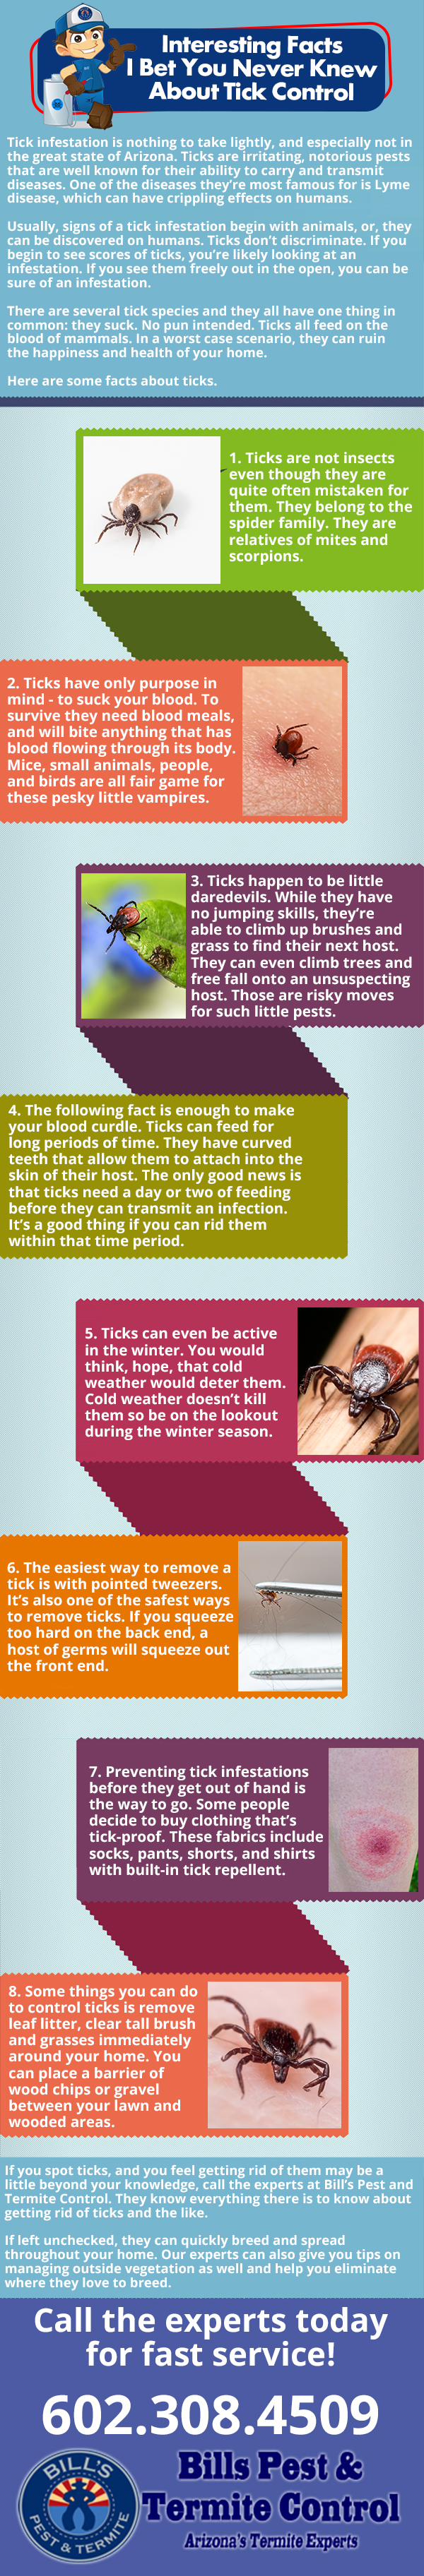 infographic-160-Interesting-Facts-I-Bet-You-Never-Knew-About-Tick-Control